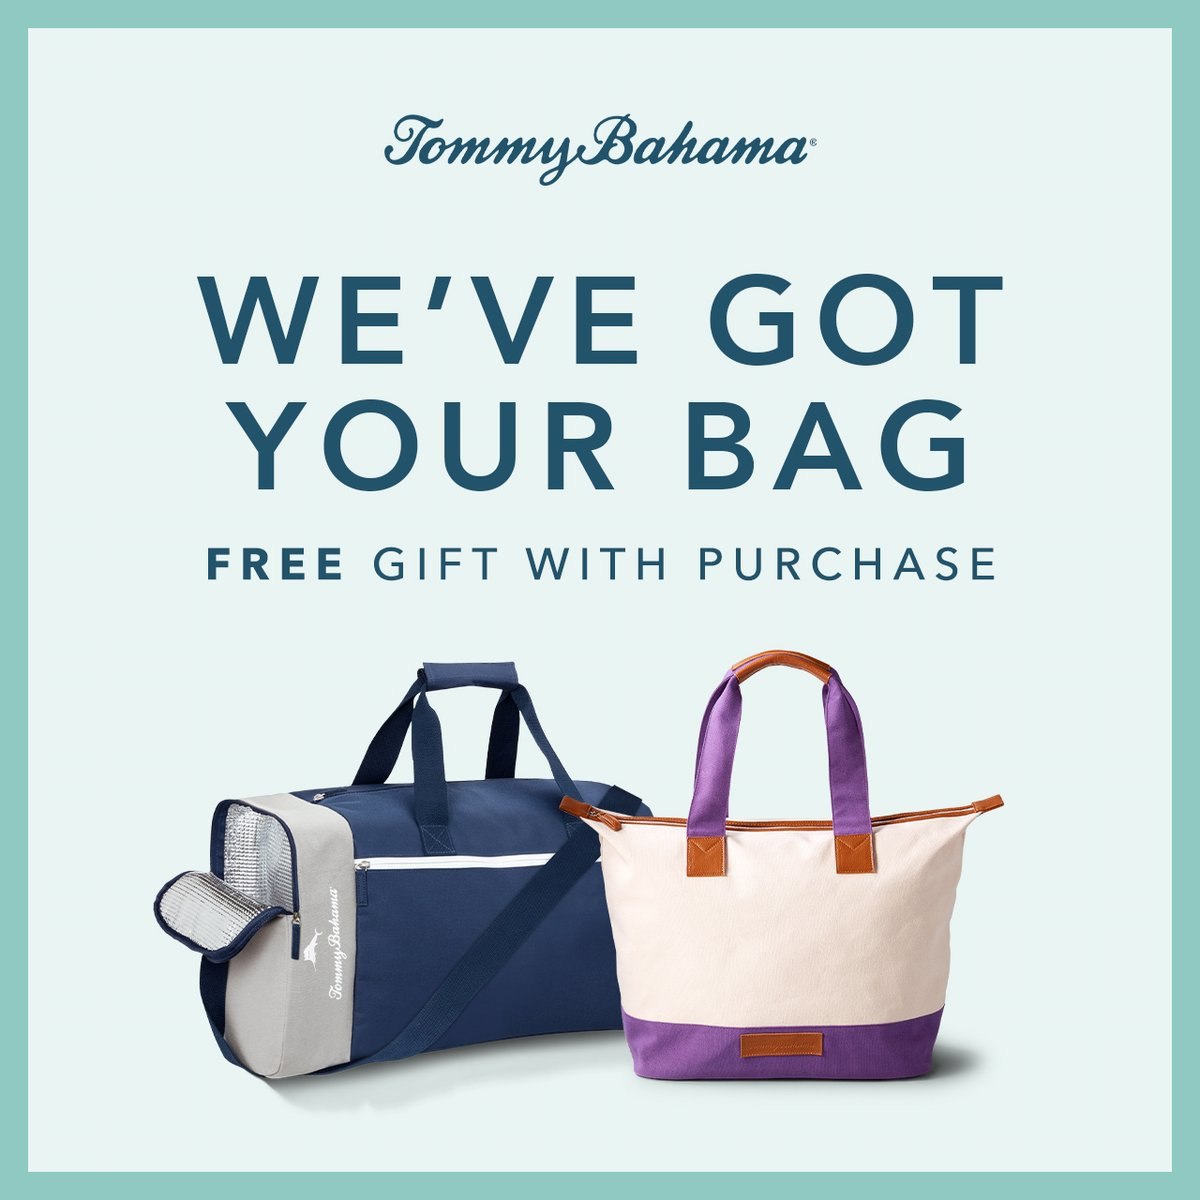 Get a free duffel bag or tote with a select men's or women's fragrance purchase, now through September 20 at Tommy Bahama! https://t.co/B3qrEQ0uHi